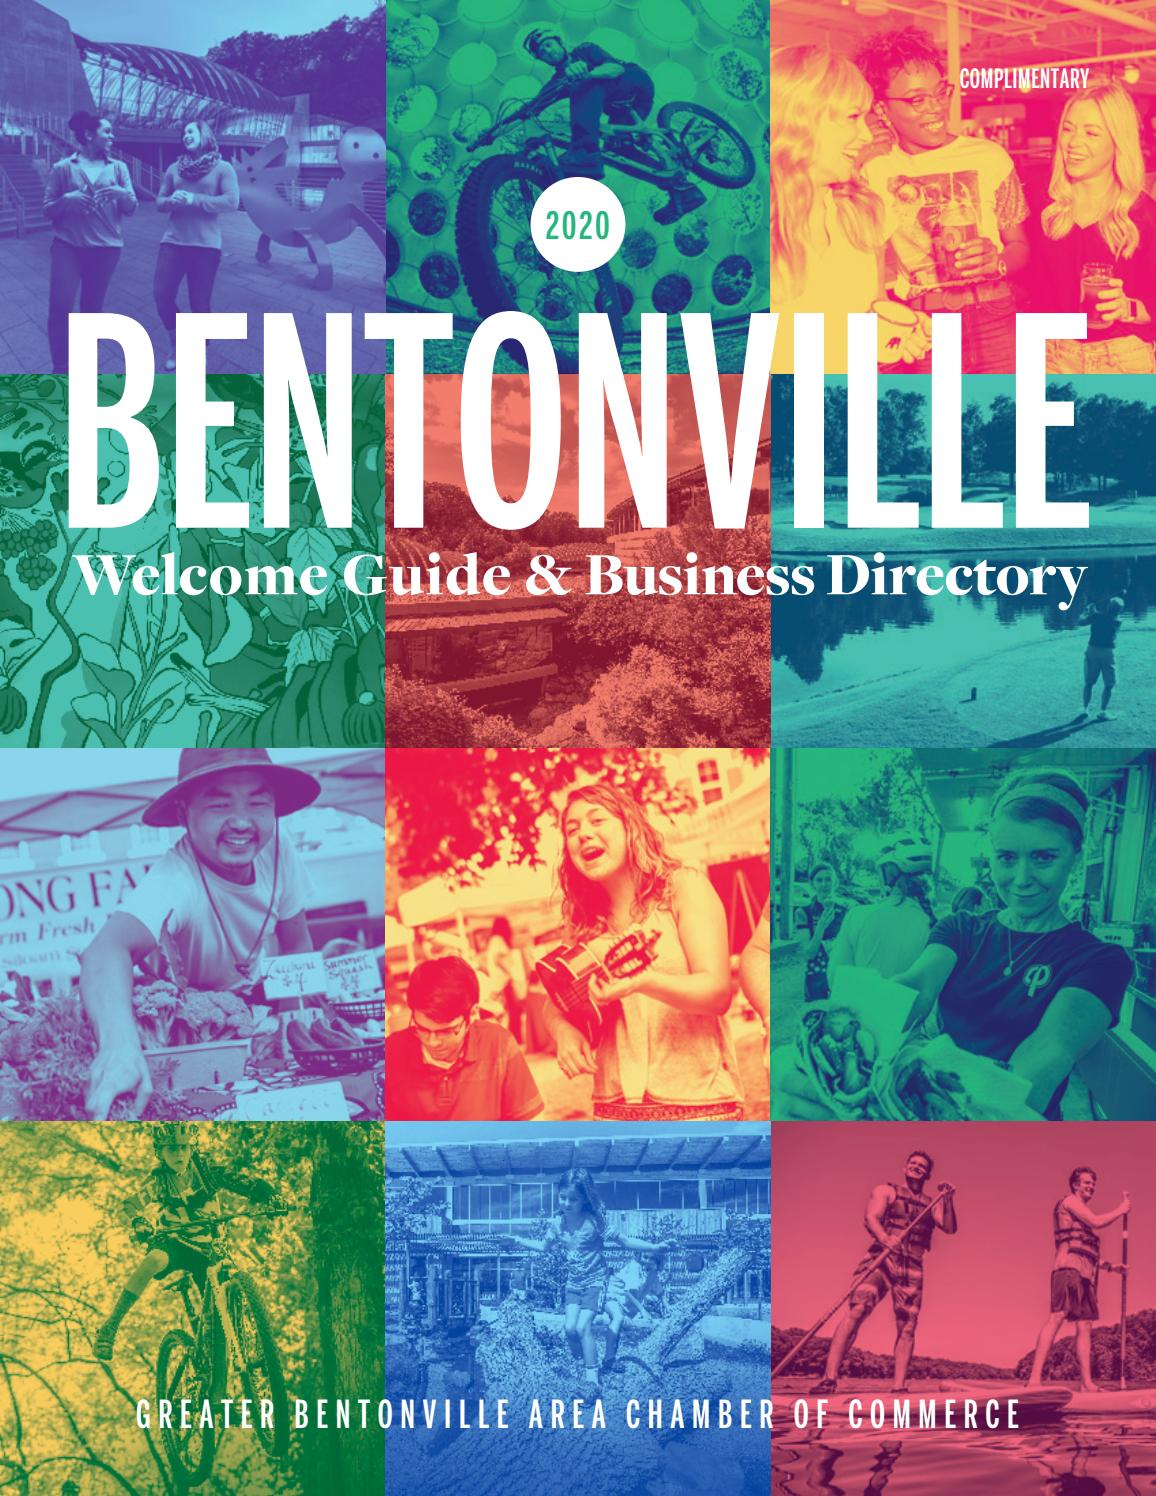 2020 Bentonville Welcome Guide Business Directory By Vantage Point Commmunications Issuu